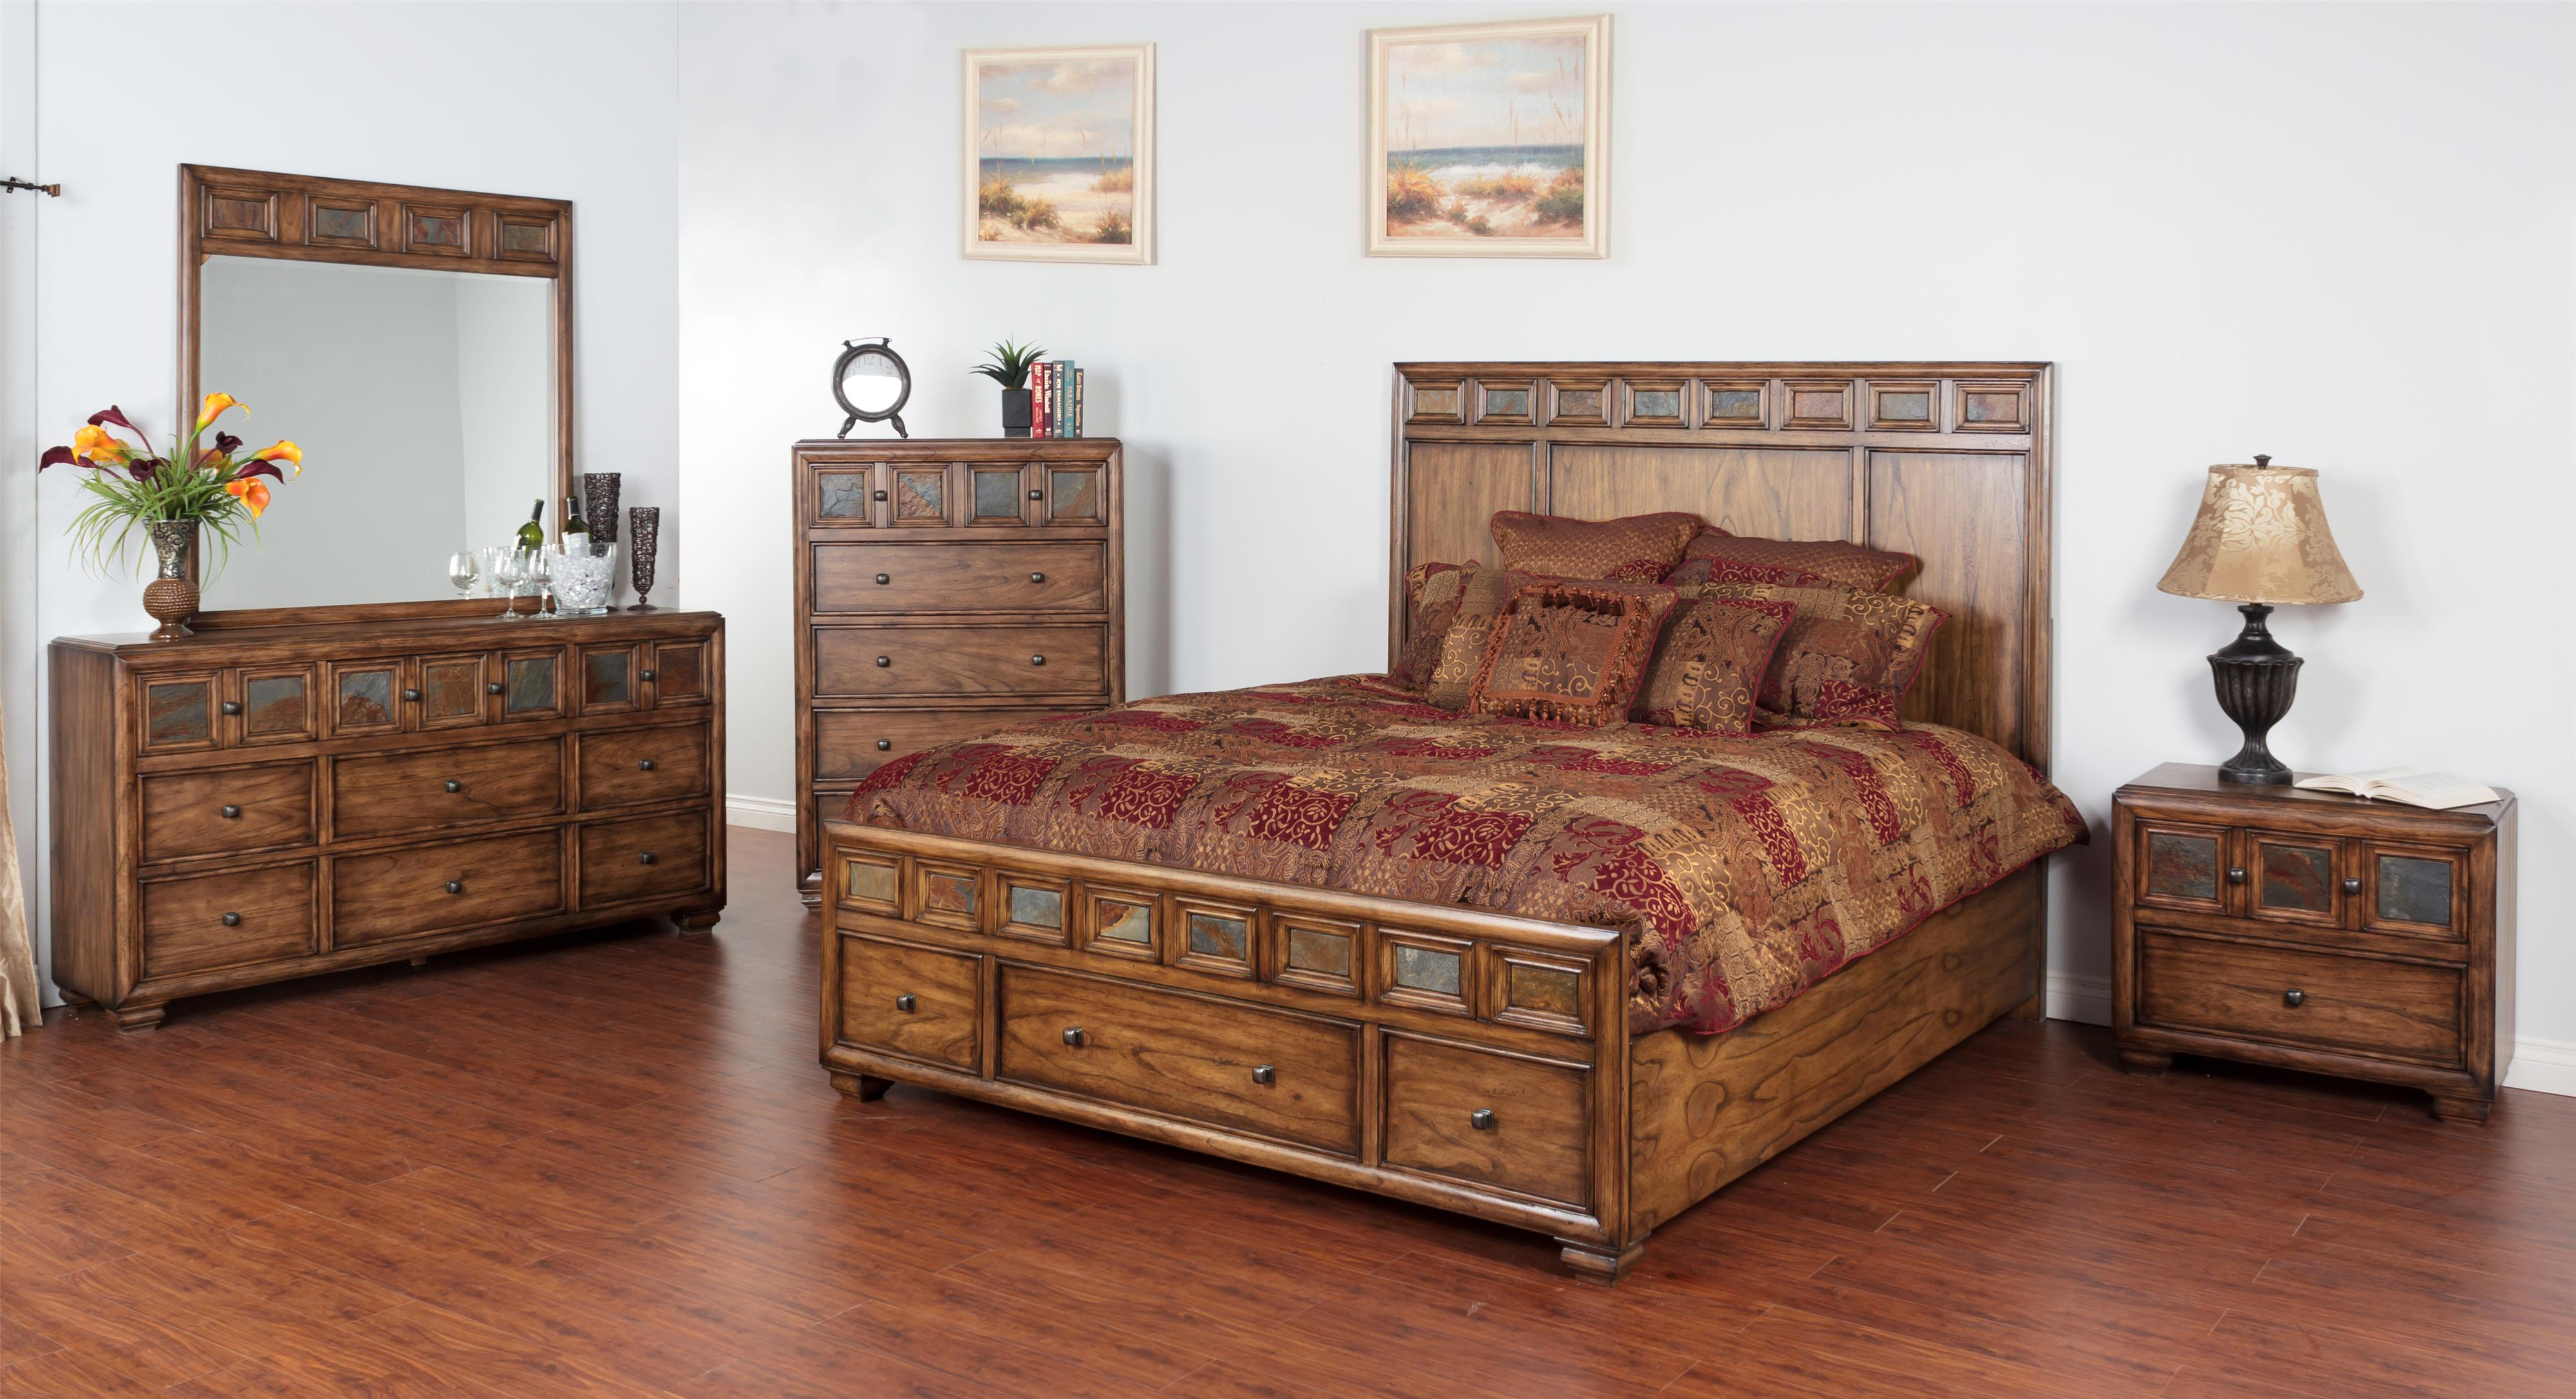 Sunny Designs Coventry King Bedroom Group - Item Number: BM K Bedroom Group 1